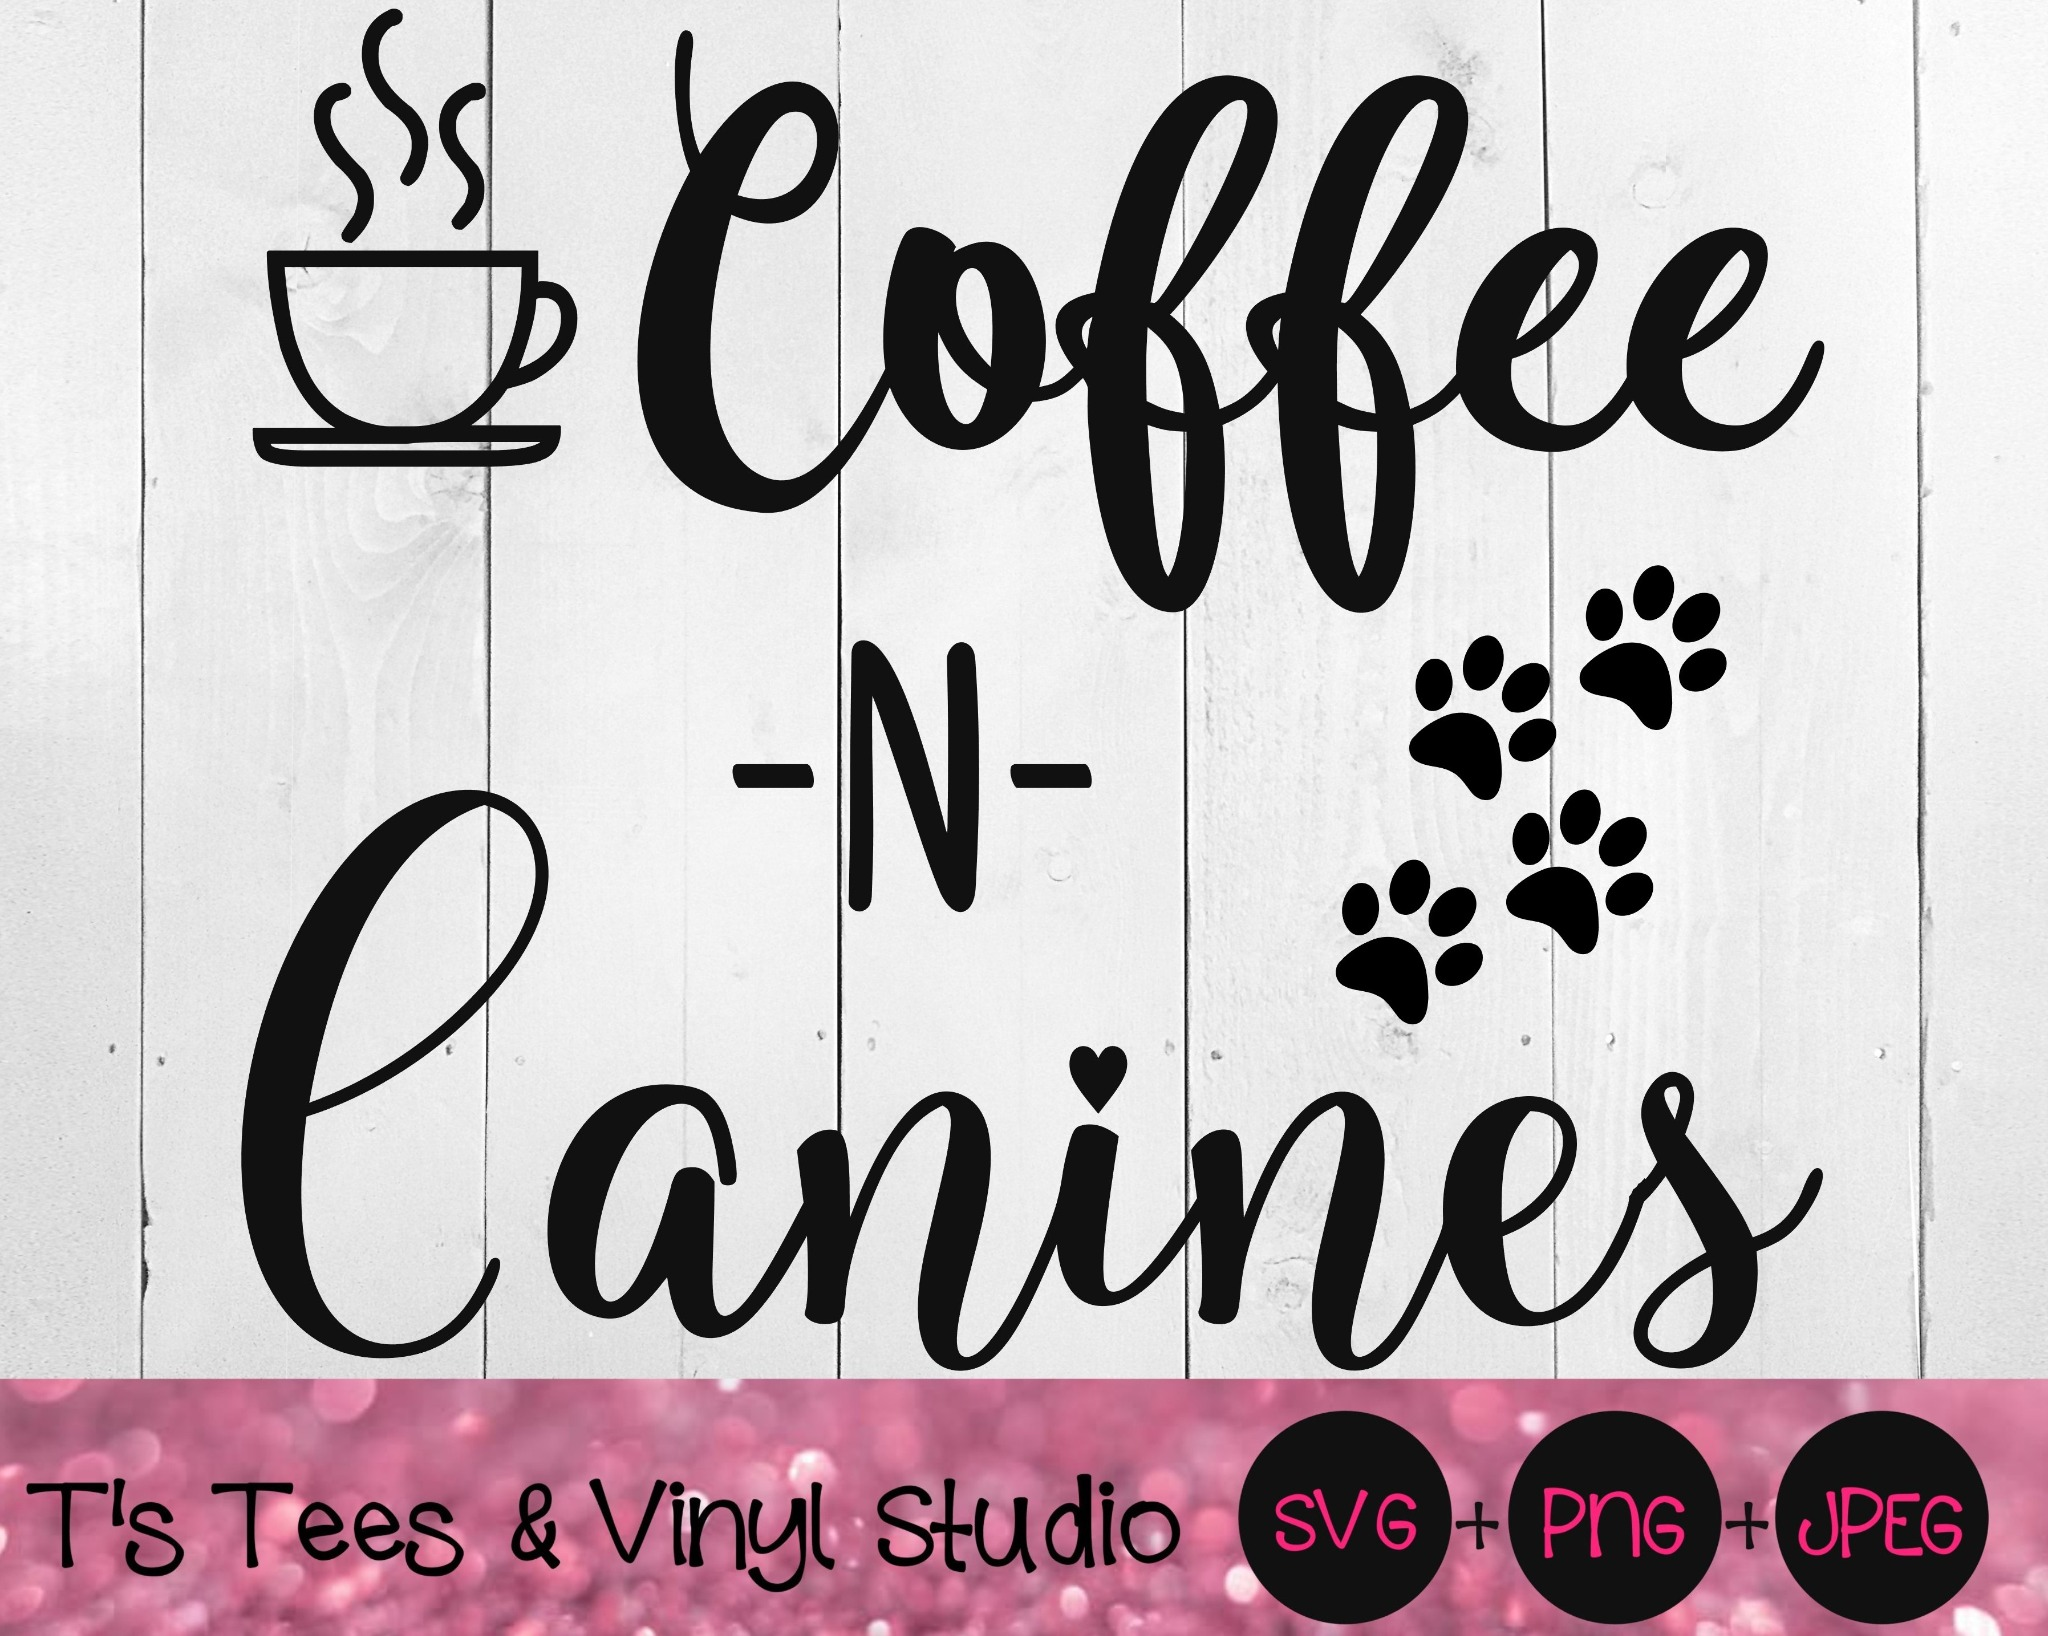 Coffee Svg, Dogs Svg, Canines Svg, Coffee Life Svg, Dog Life Svg, Coffee And Dogs Svg, Coffee Png